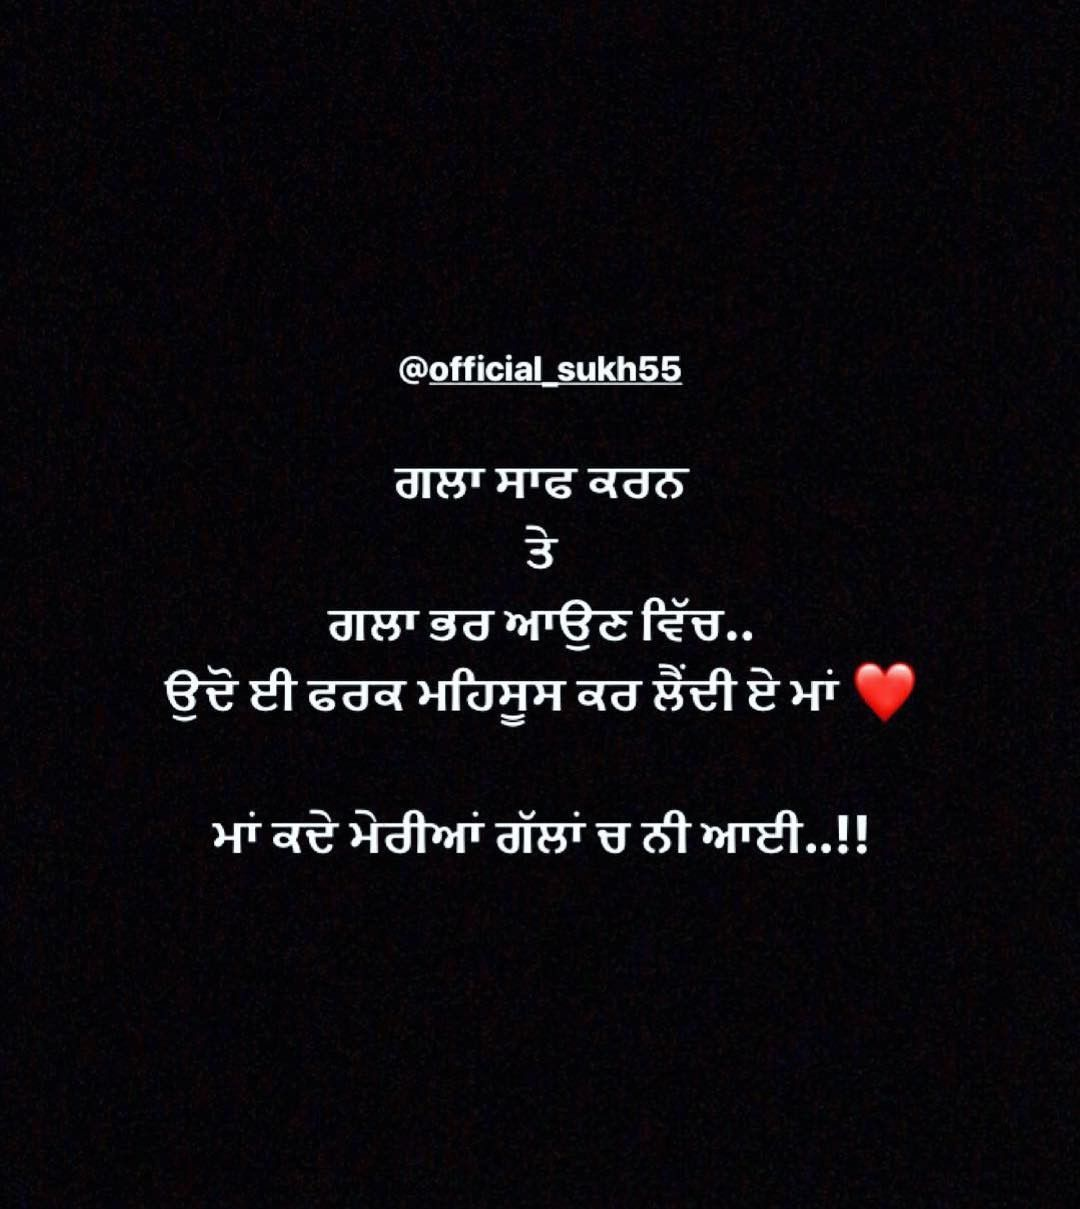 Pin by Deep on sukh | Life quotes, Quotes, Punjabi quotes